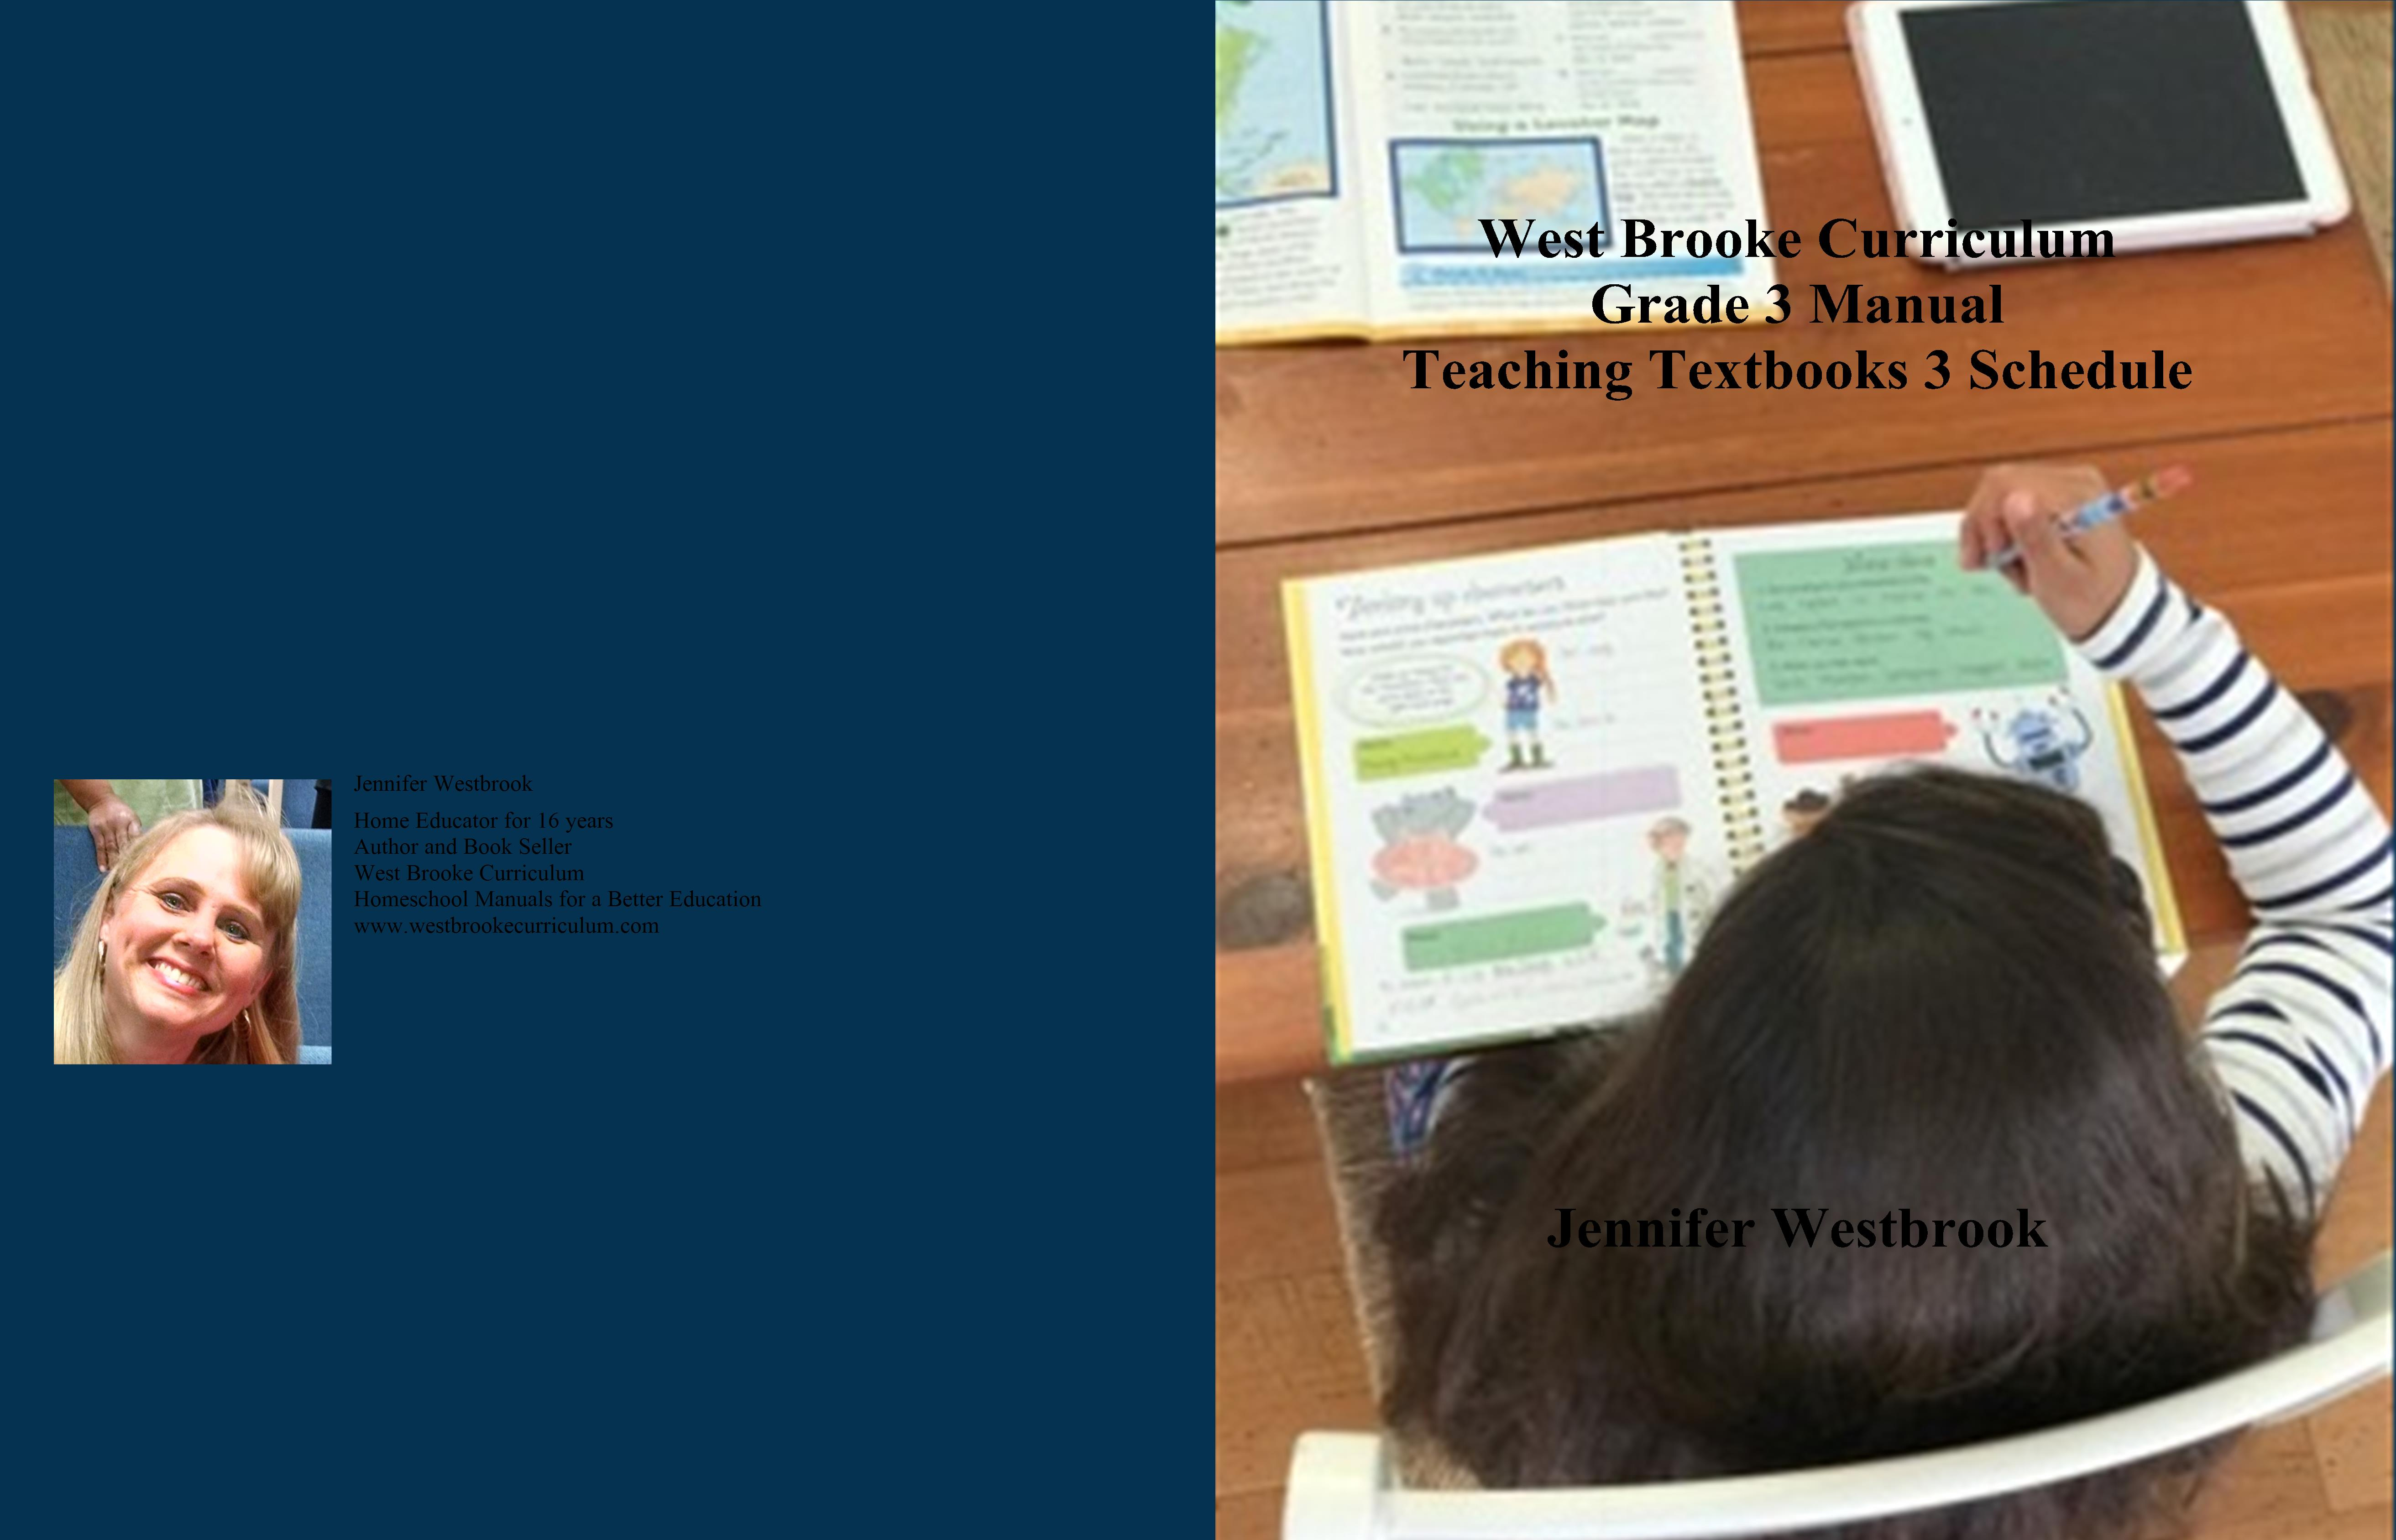 West Brooke Curriculum Grade 3 Manual Teaching Textbooks 3 Schedule cover image